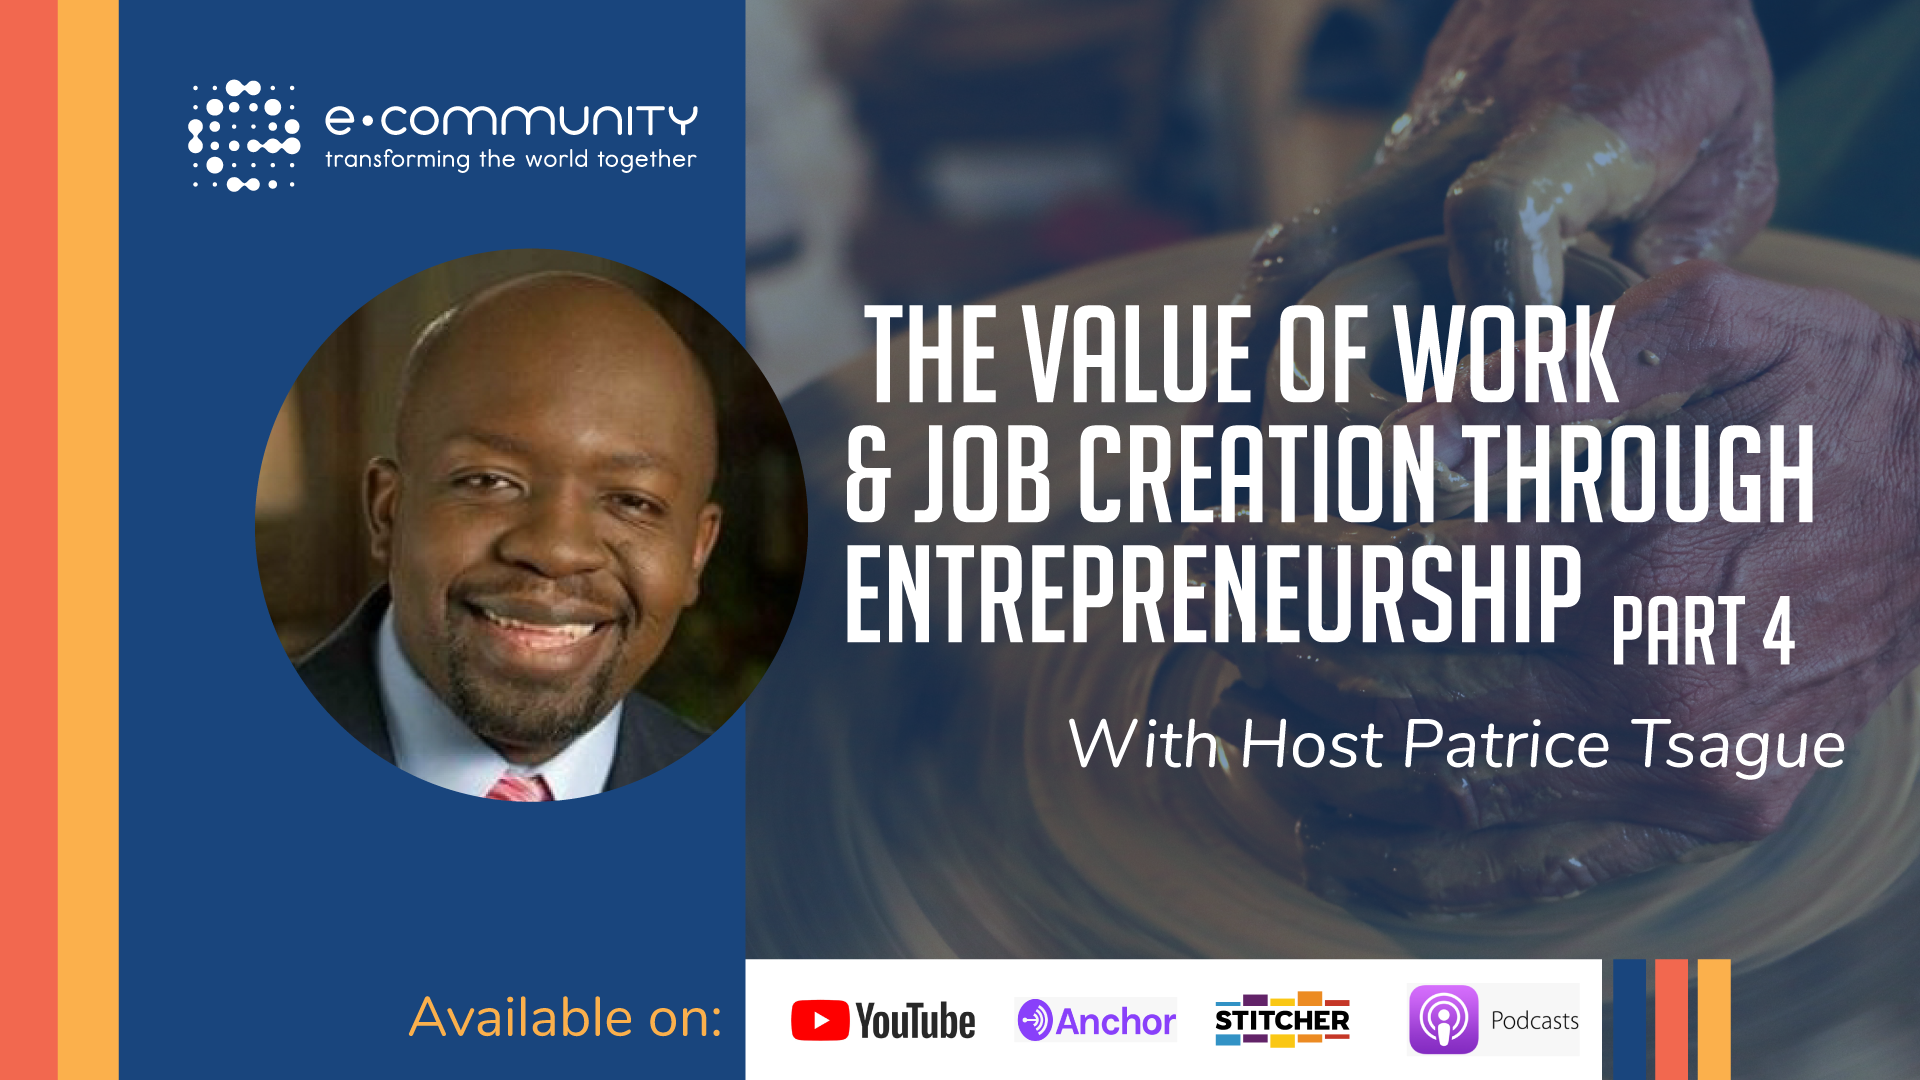 The Value of Work Part IV